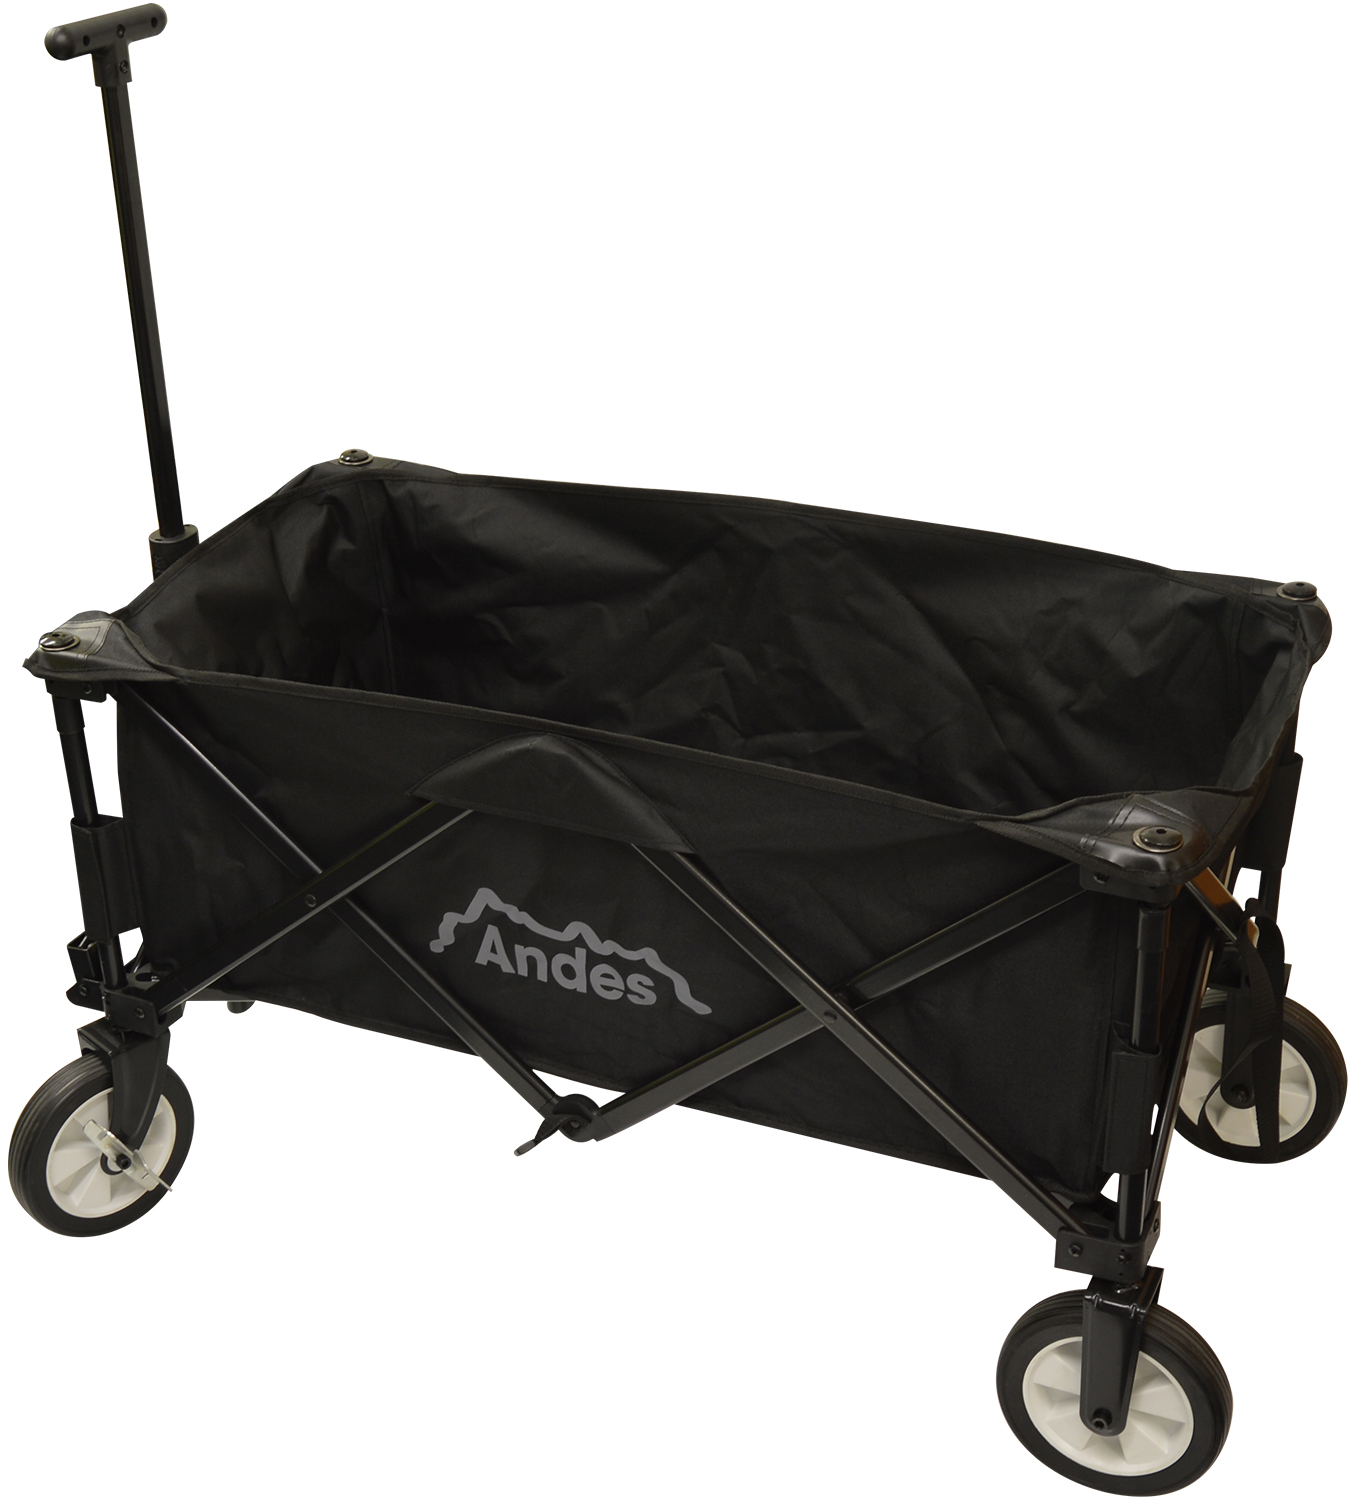 Andes black collapsible portable folding camping wagon for Folding fishing cart